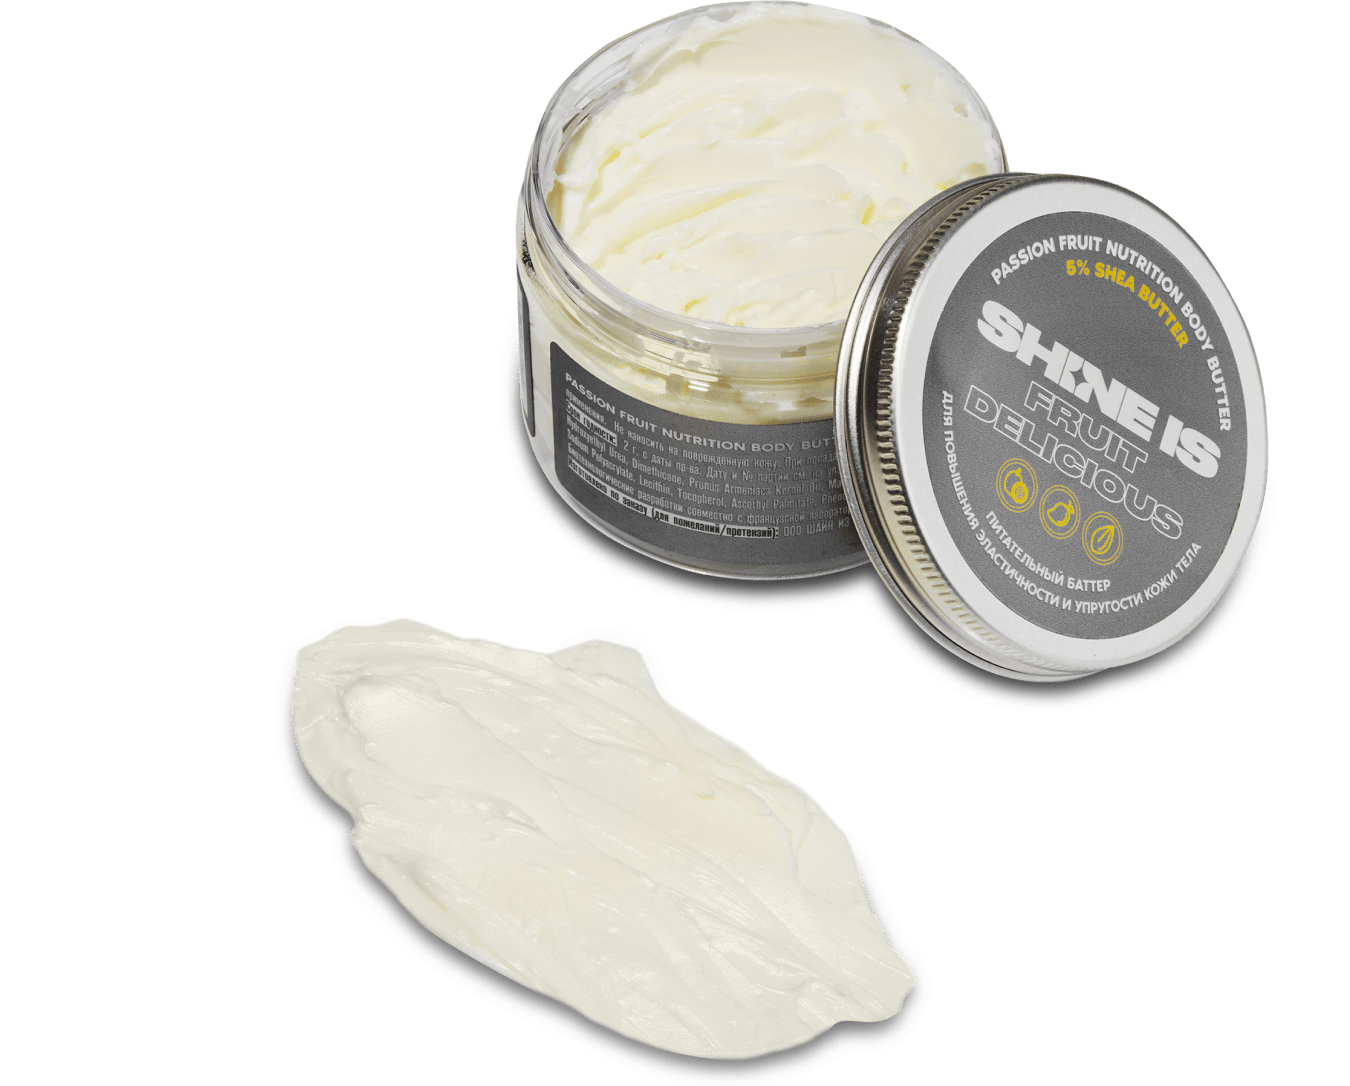 Passion Fruit Nutrition Body Butter